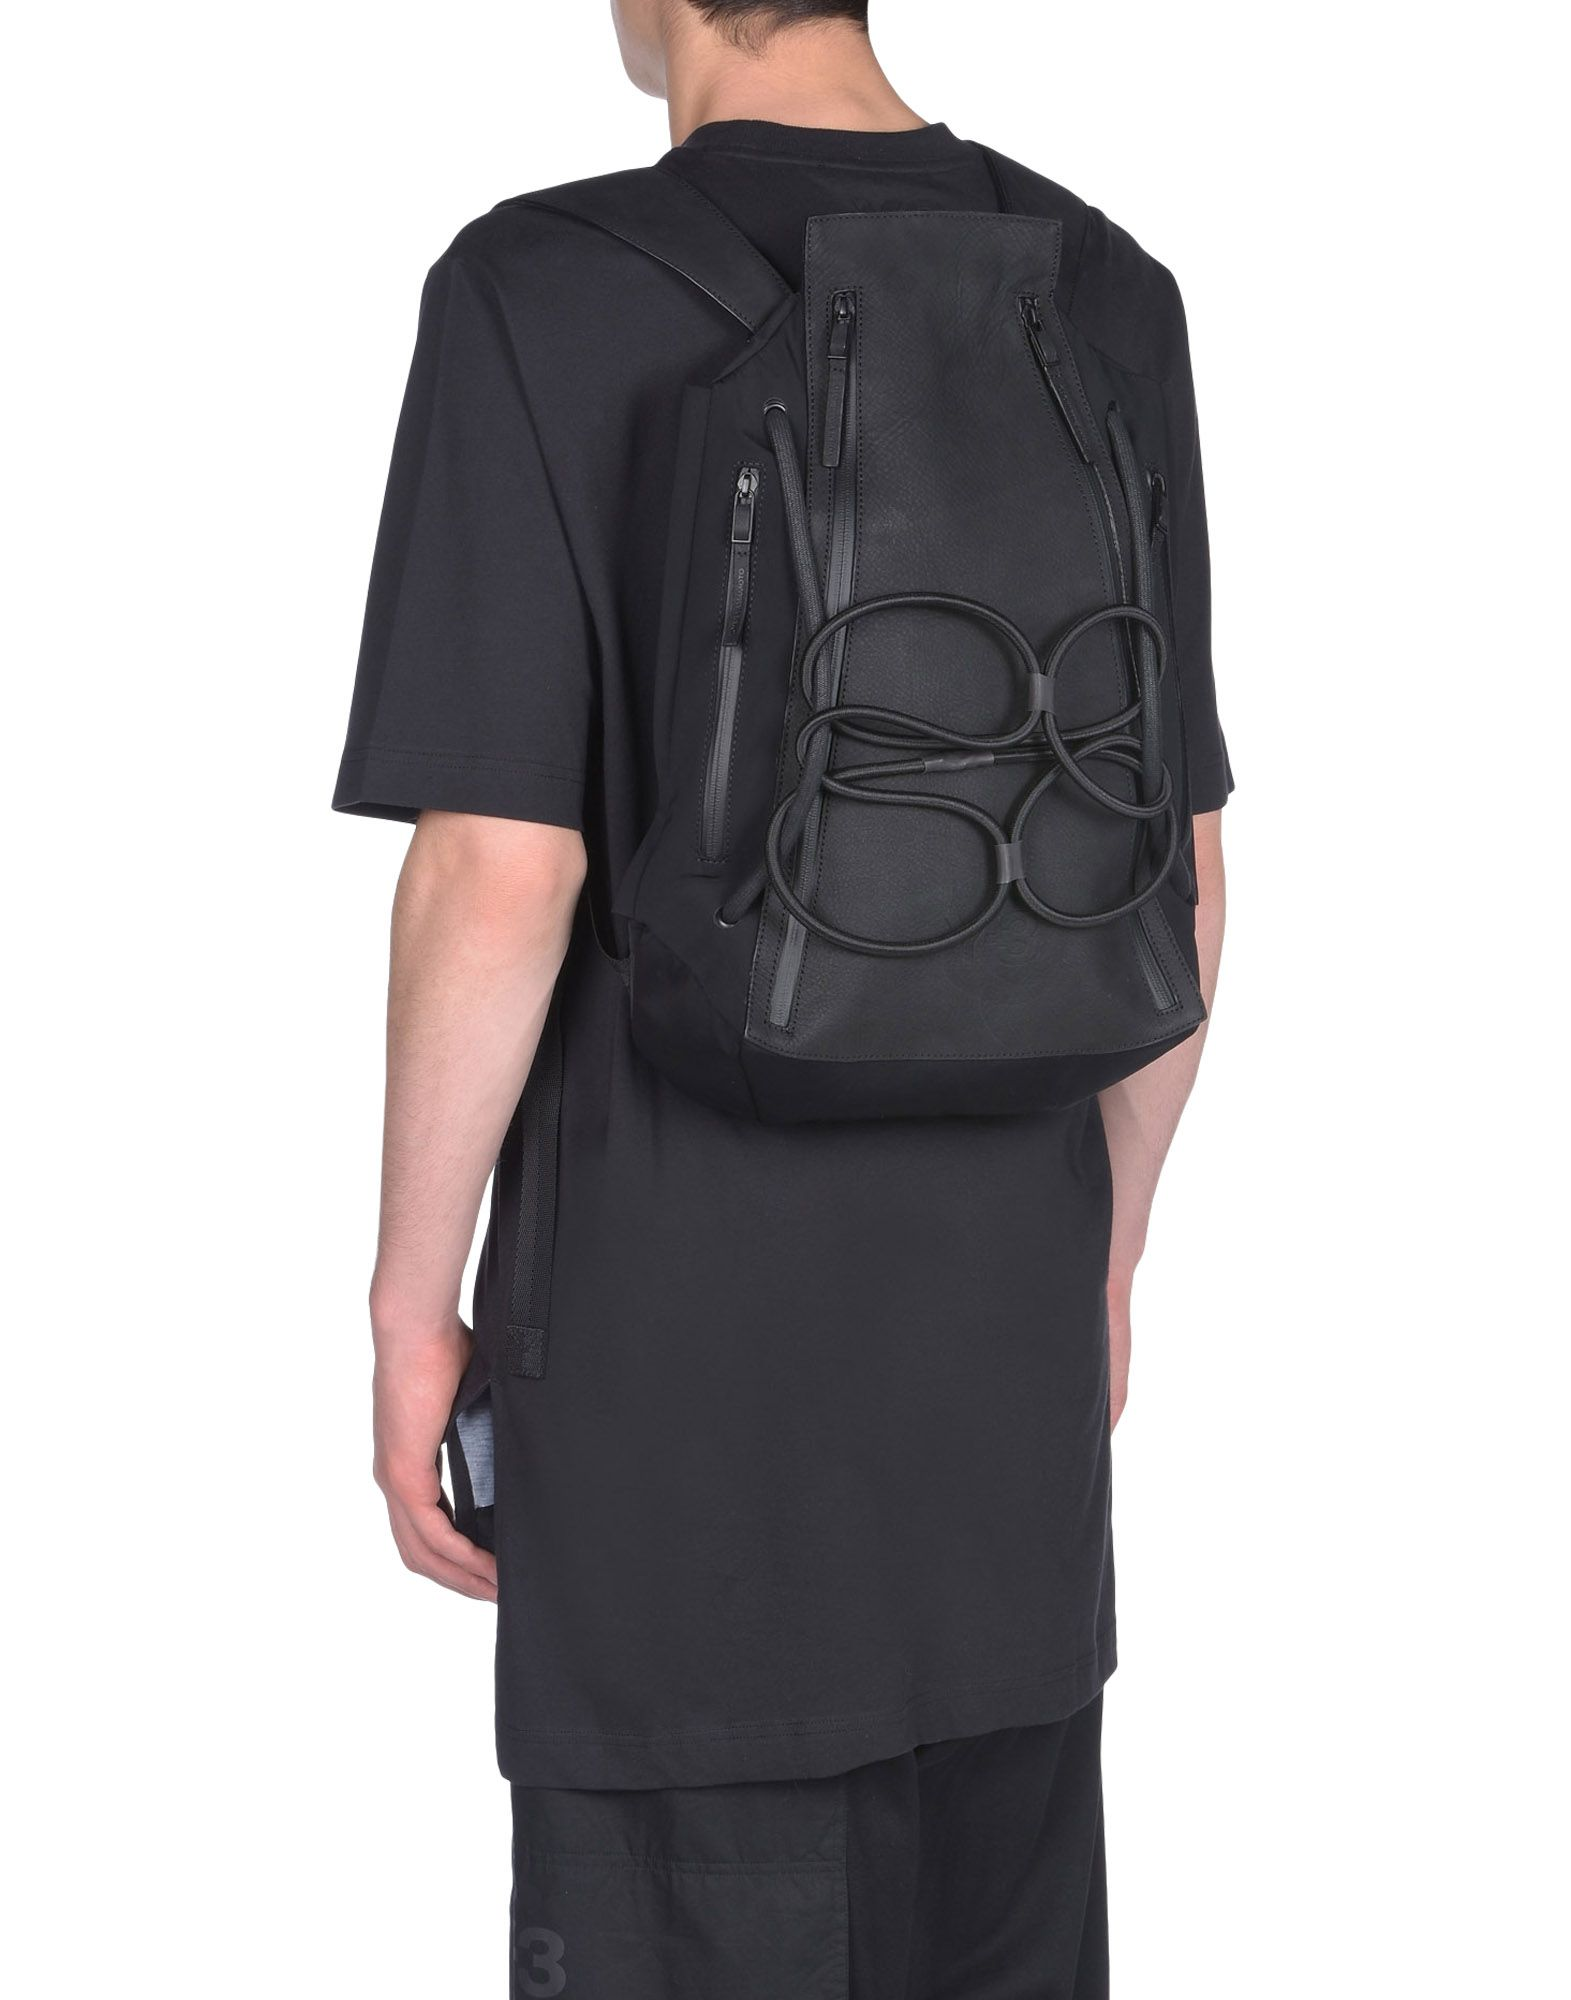 Y-3 HIGHLIGHT BACKPACK BAGS unisex Y-3 adidas